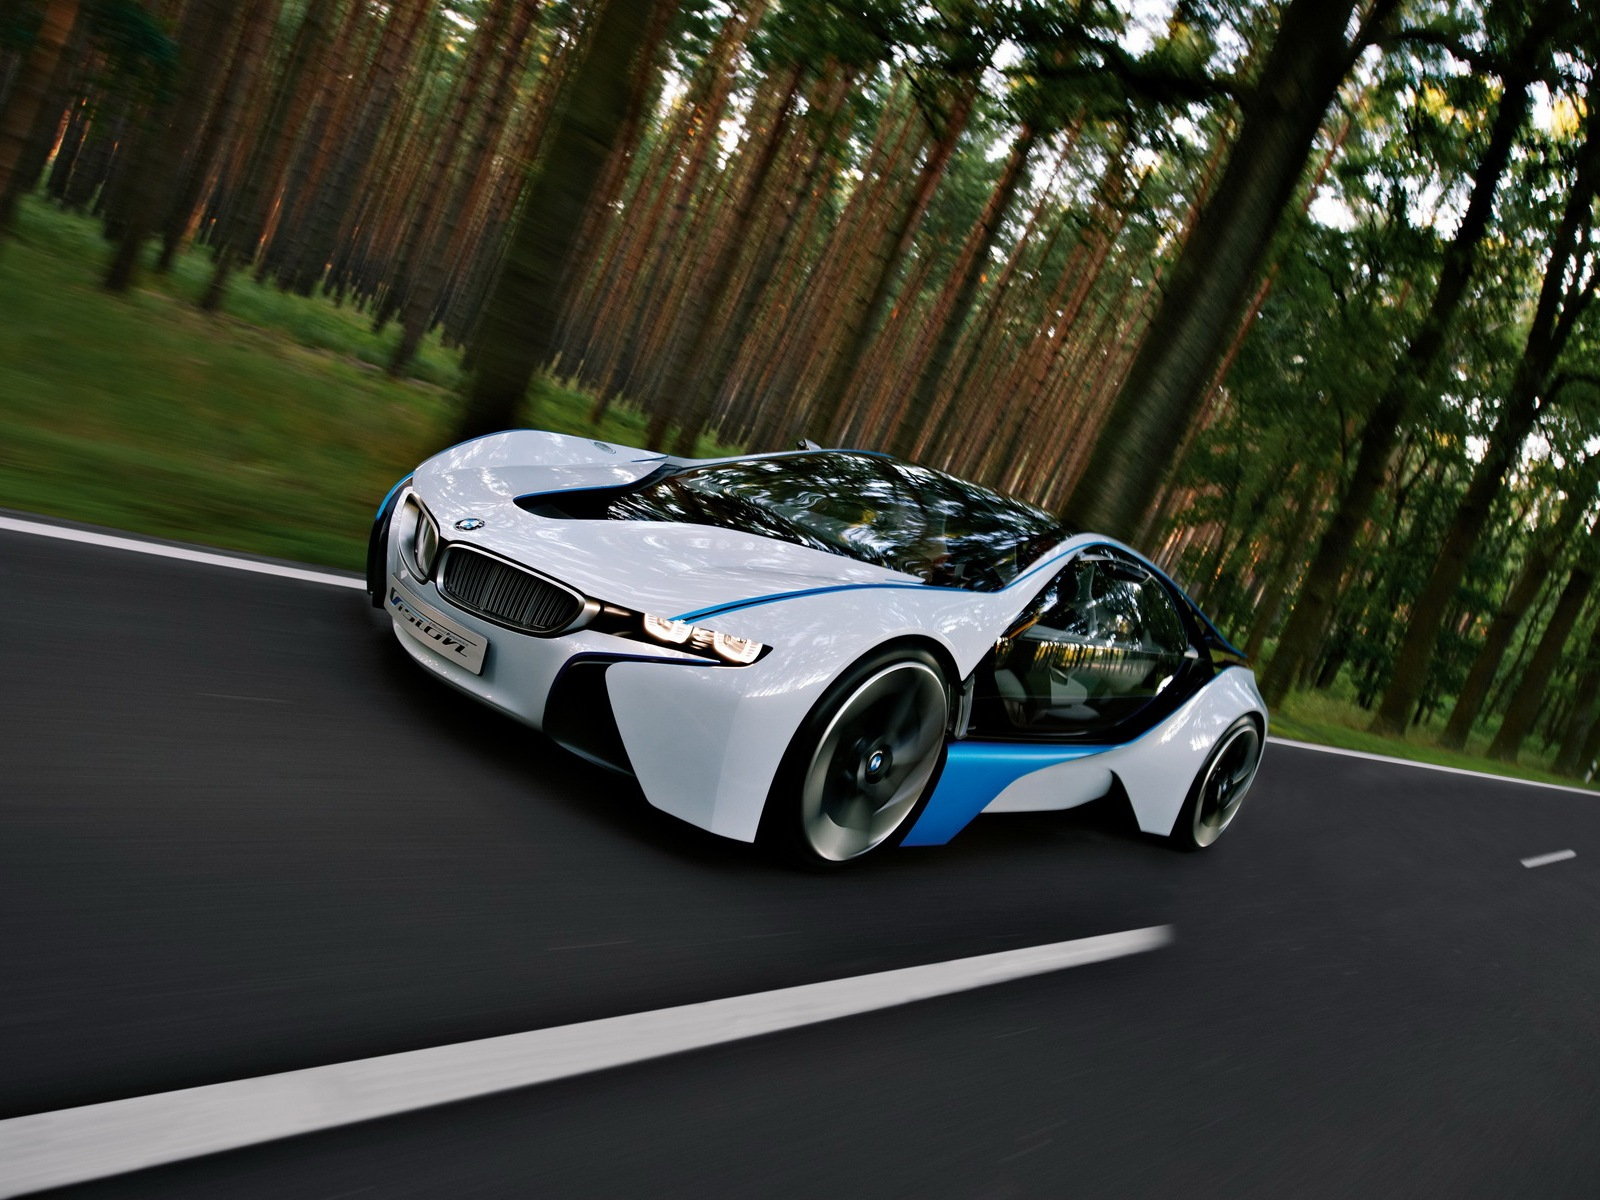 bmw-vision-efficientdynamics-31.jpg